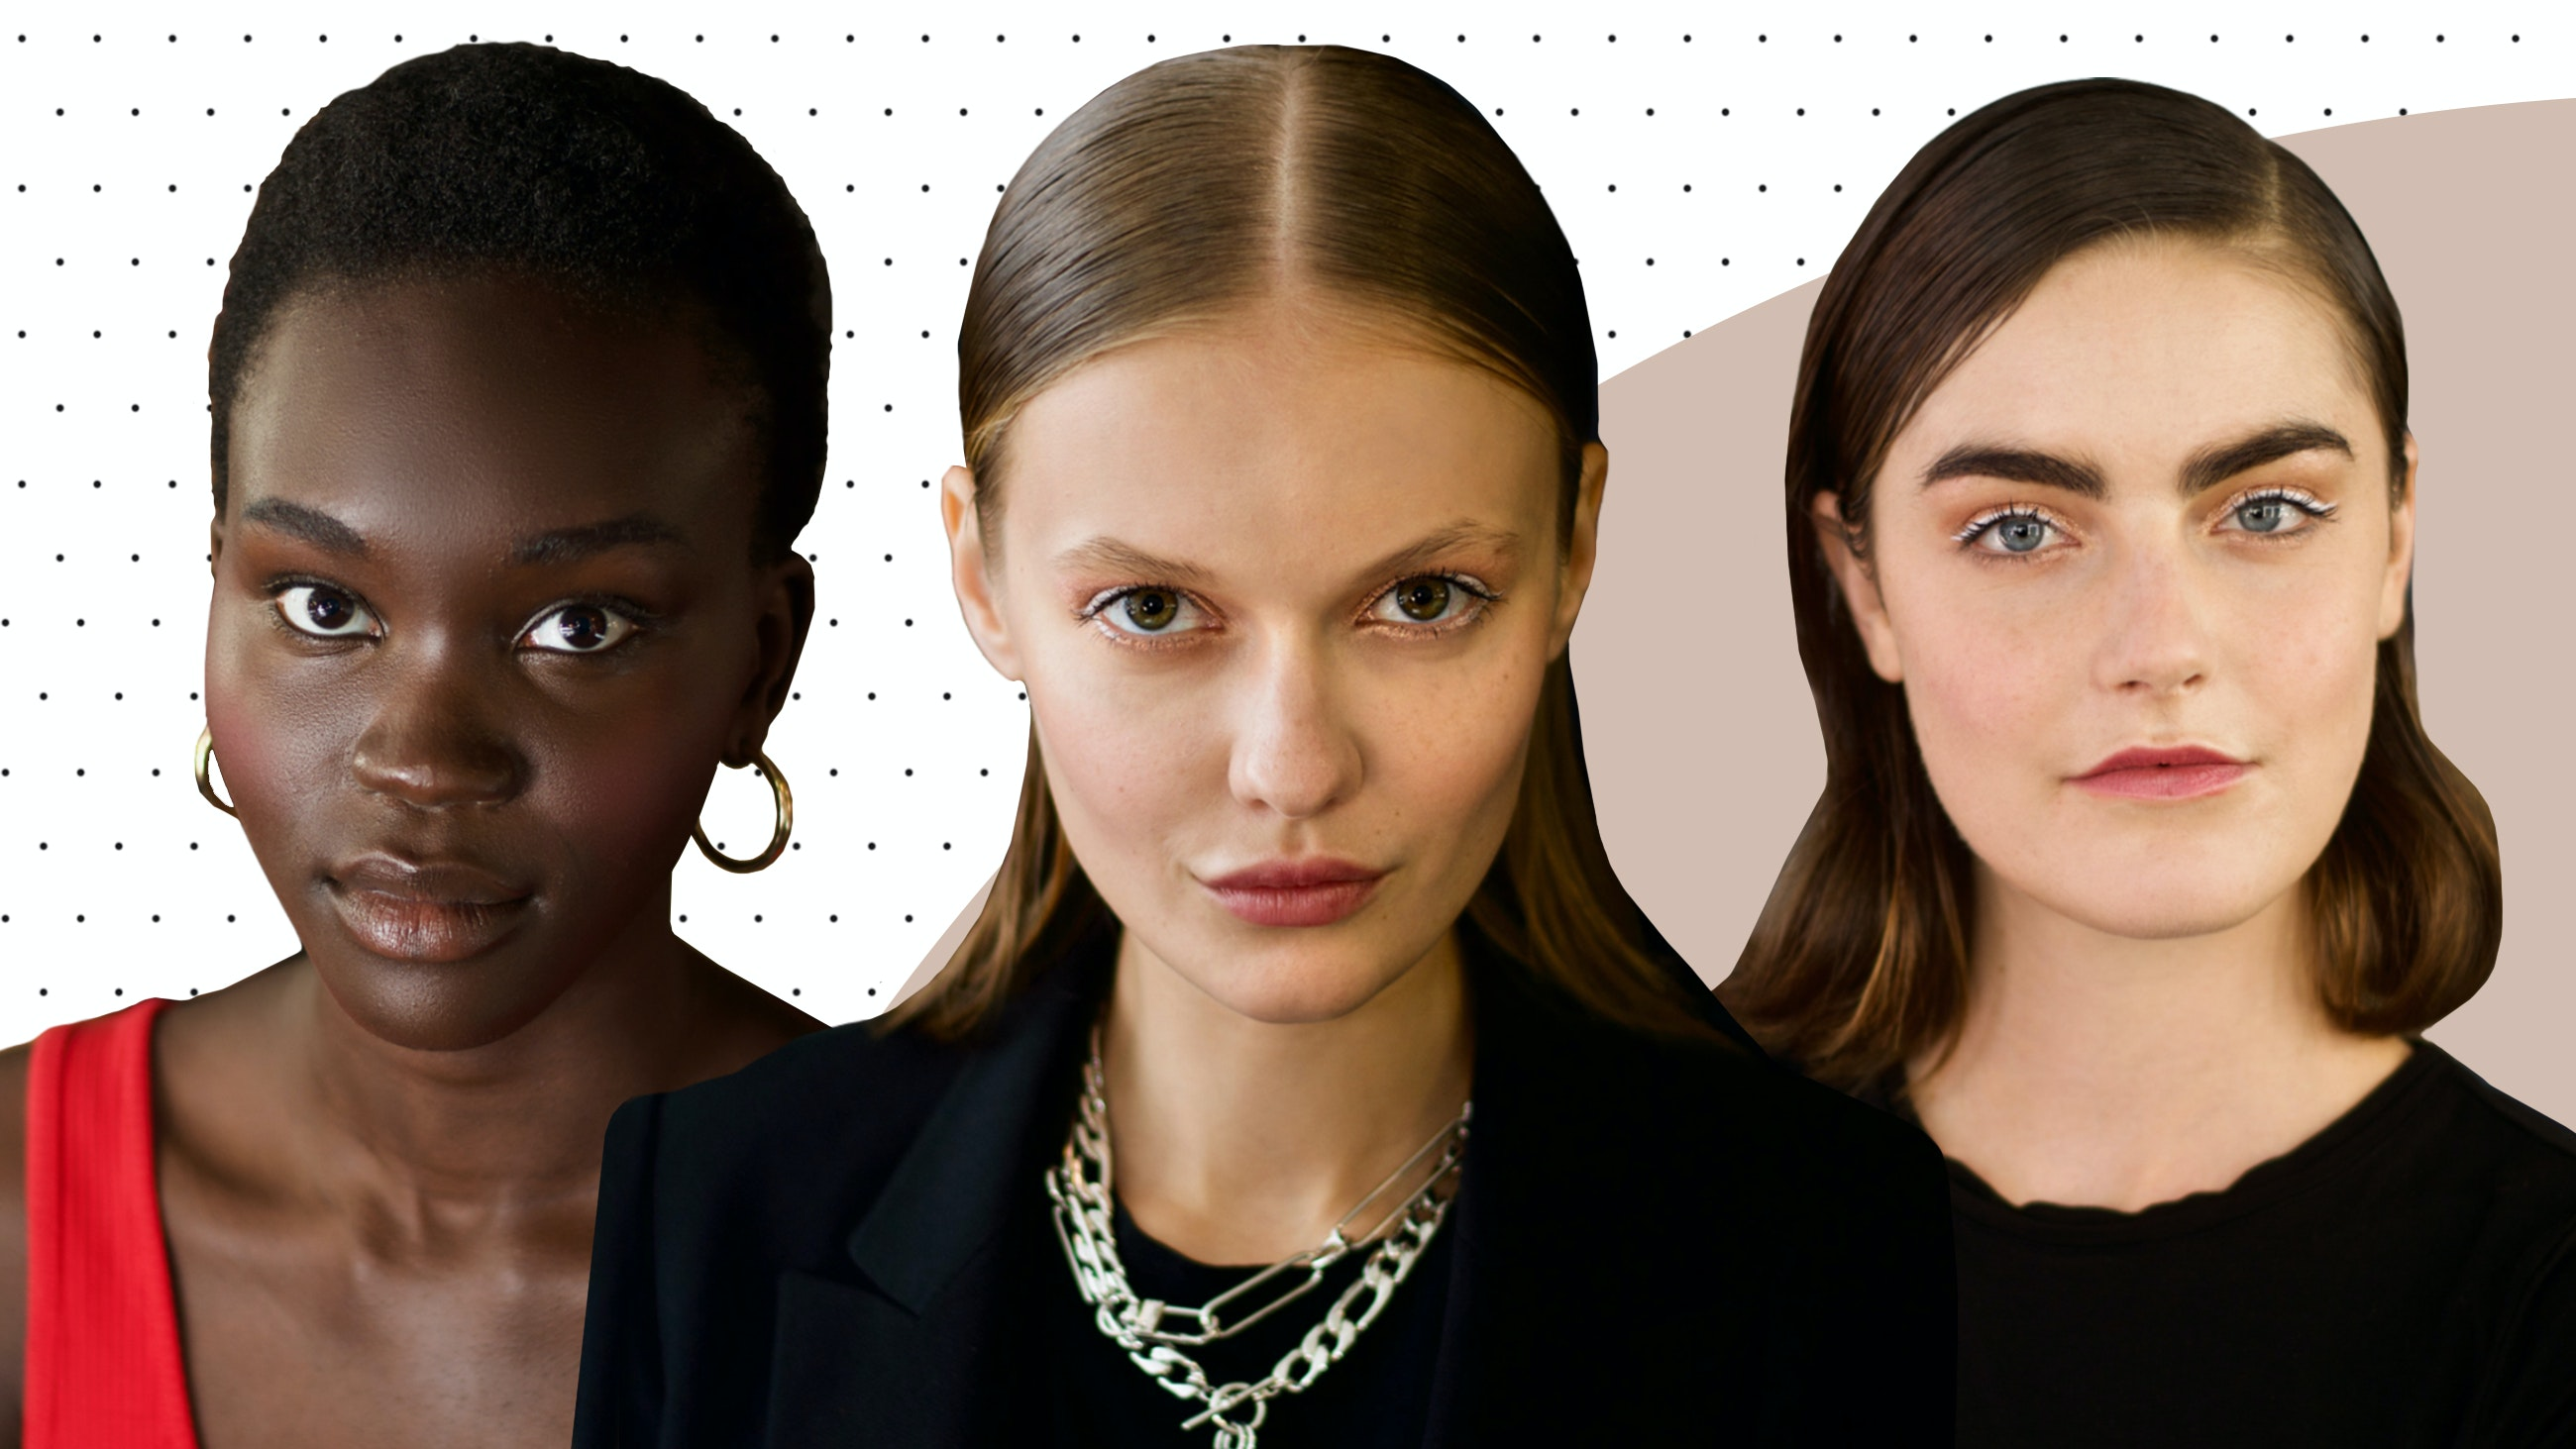 We Asked Fashion Week Models About Their Skincare Routines and Stance on Injectables — And Their Answers May Surprise You